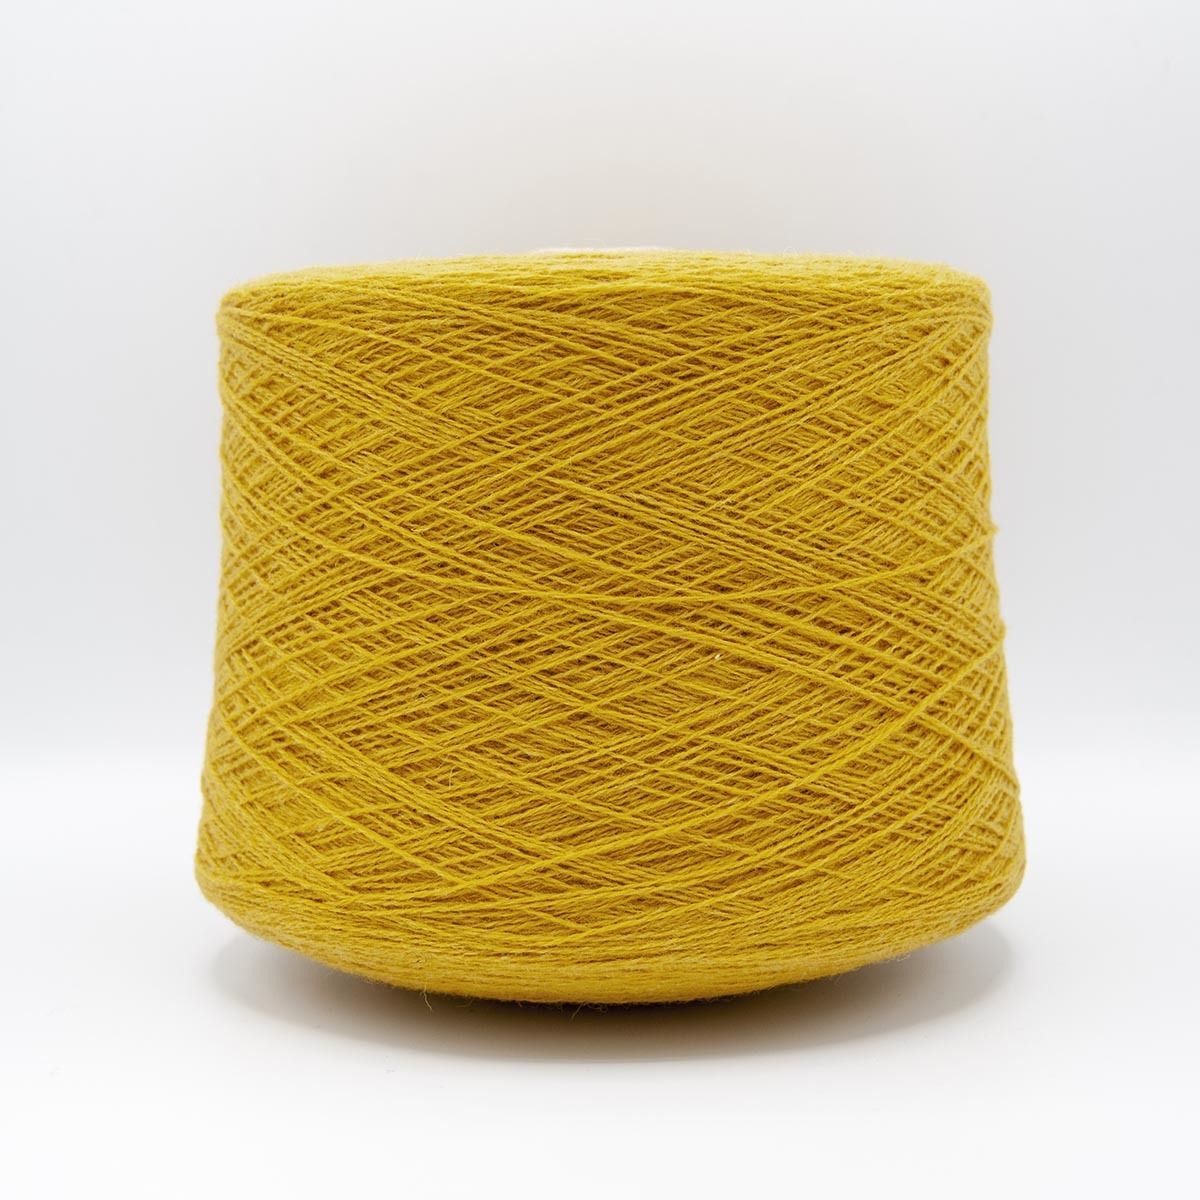 Knoll Yarns Supersoft - 540